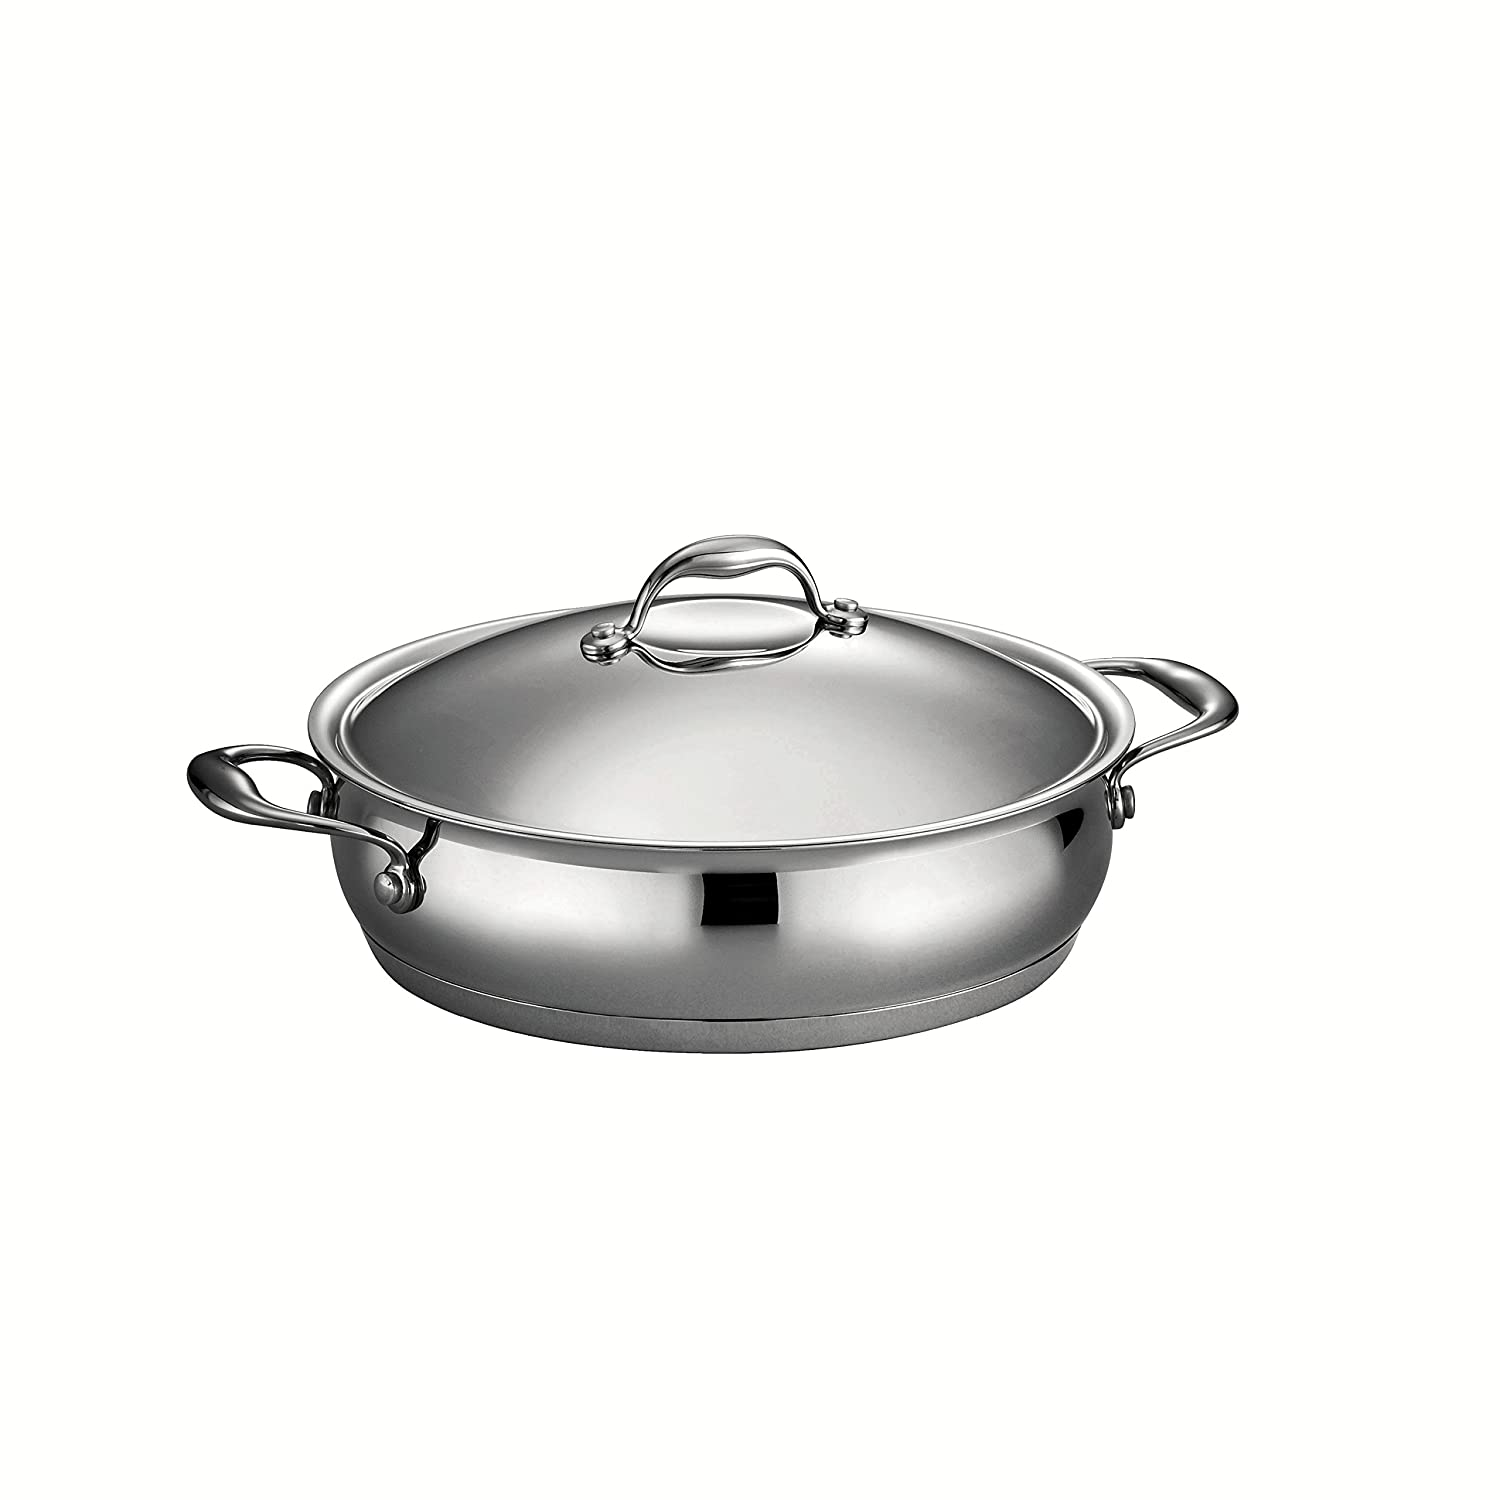 Tramontina 80102/013DS Gourmet Domus Stainless Steel Double-Boiler (Fits 3Qt & 4Qt Domus Sauce Pans & 5.5 Qt Domus Stock Pot), 8-inch, Made in Brazil